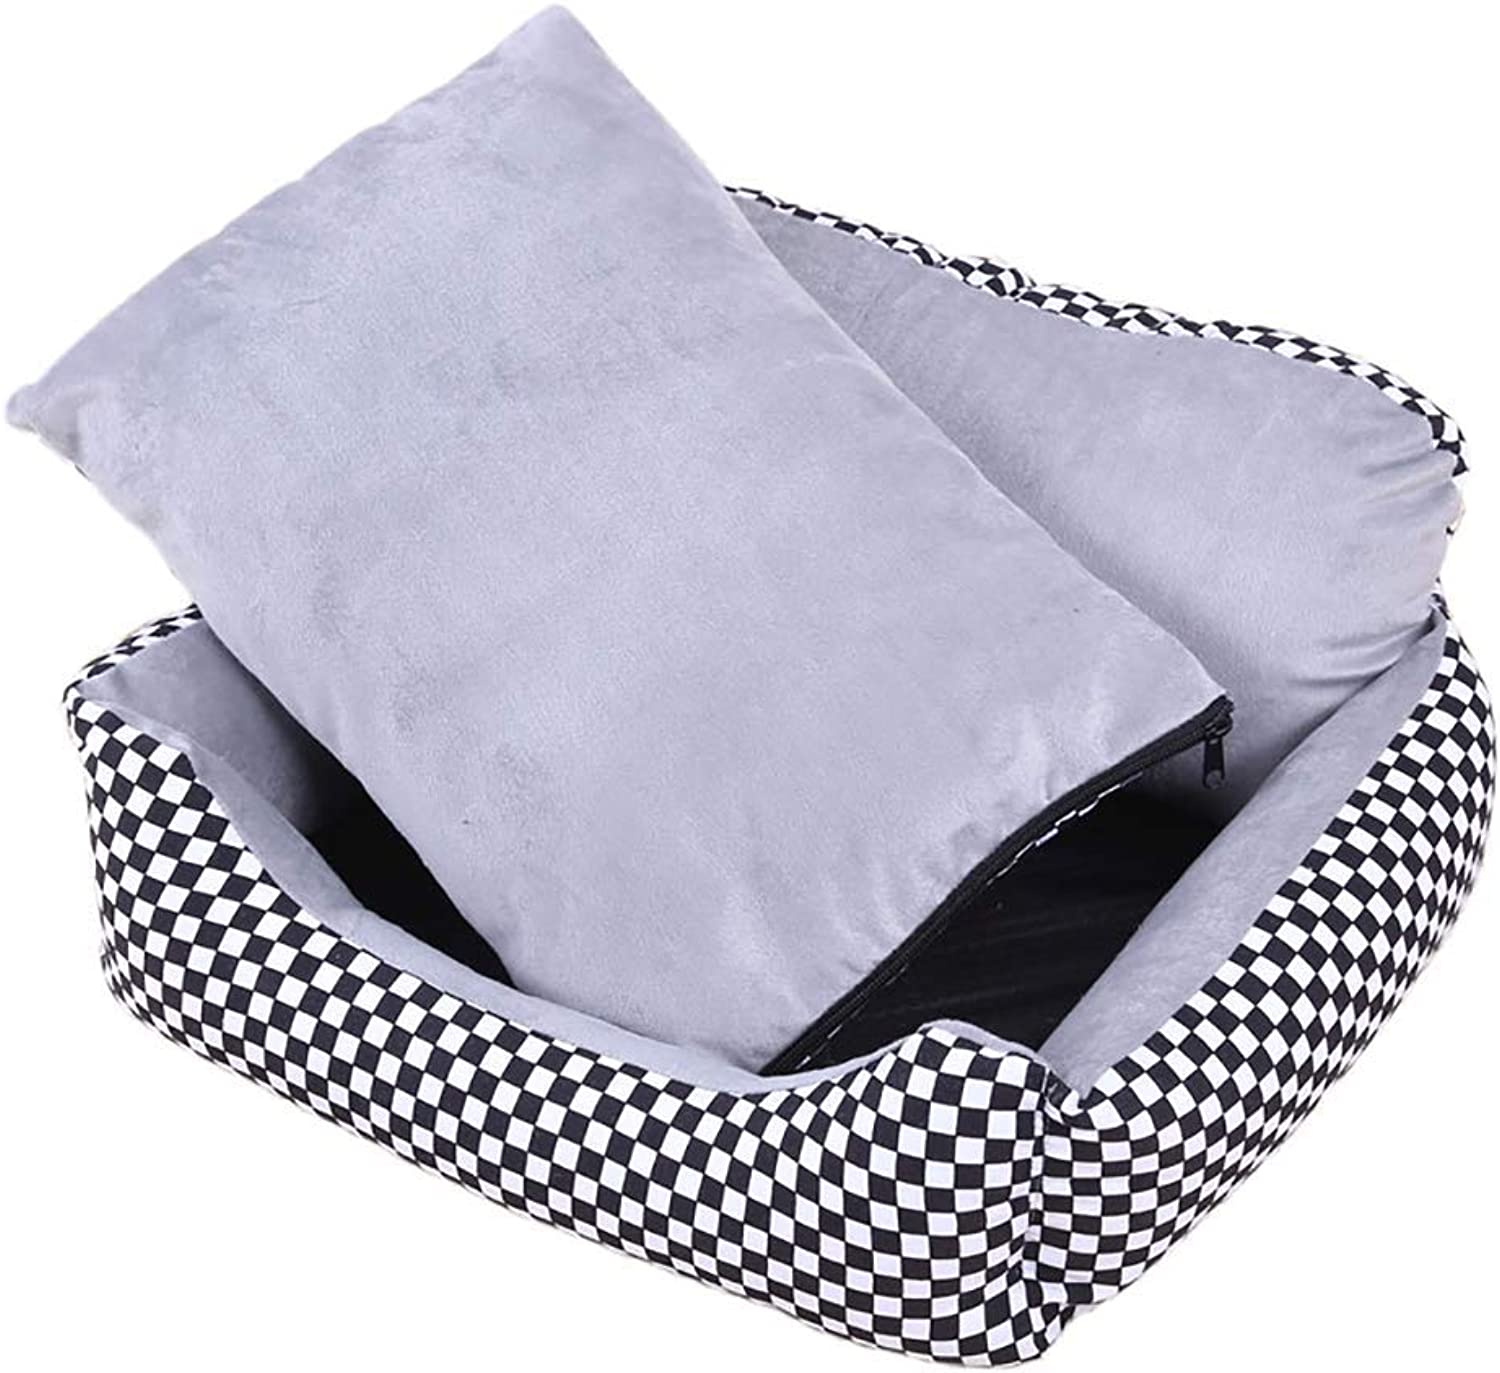 Pet Bed Pet Bed Sofa House for Dog Cat, Washable Covers, Durable, Available in All Seasons, Large, 3 colors Optional (color   3, Size   L(90  70  23cm))